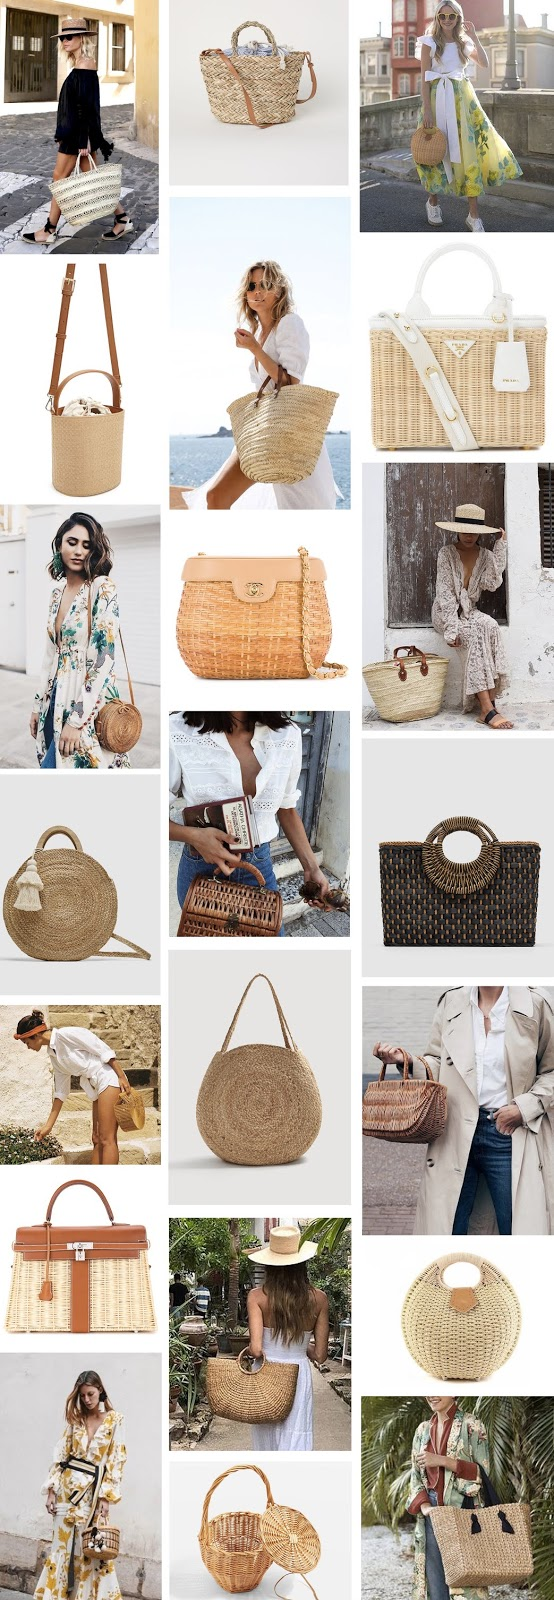 straw bags, wicker bag, ark bag, bamboo bag, styling, outfit, curacao